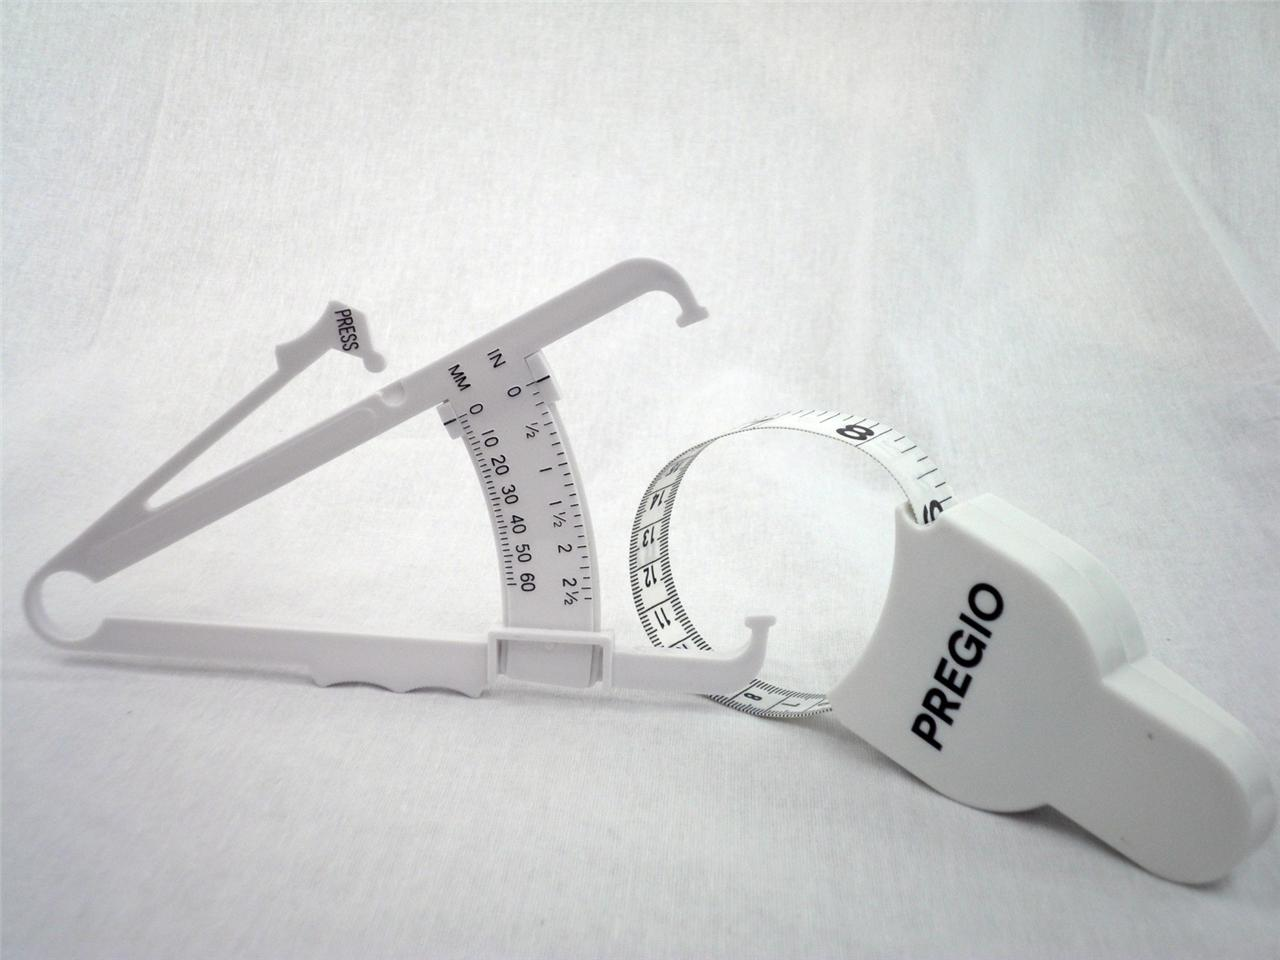 Calipers plus the tape measure: a winning combination